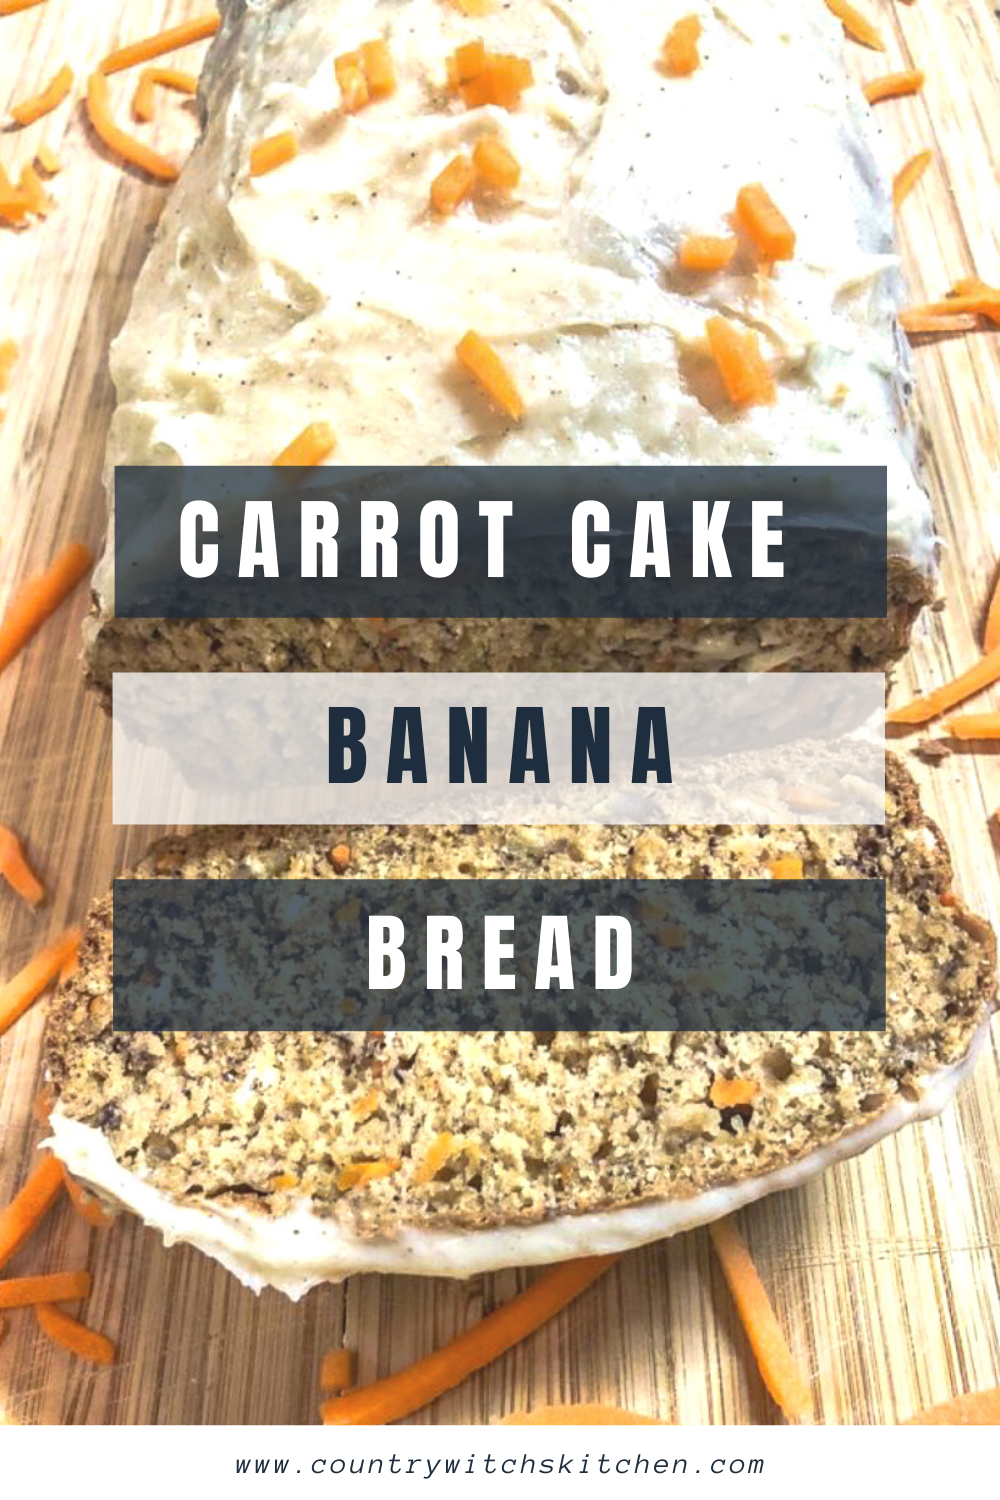 This quick and easy carrot cake banana bread with cinnamon cream cheese icing is the perfect treat any time of day #carrotcake #bananabread #breadrecipe #quickbread